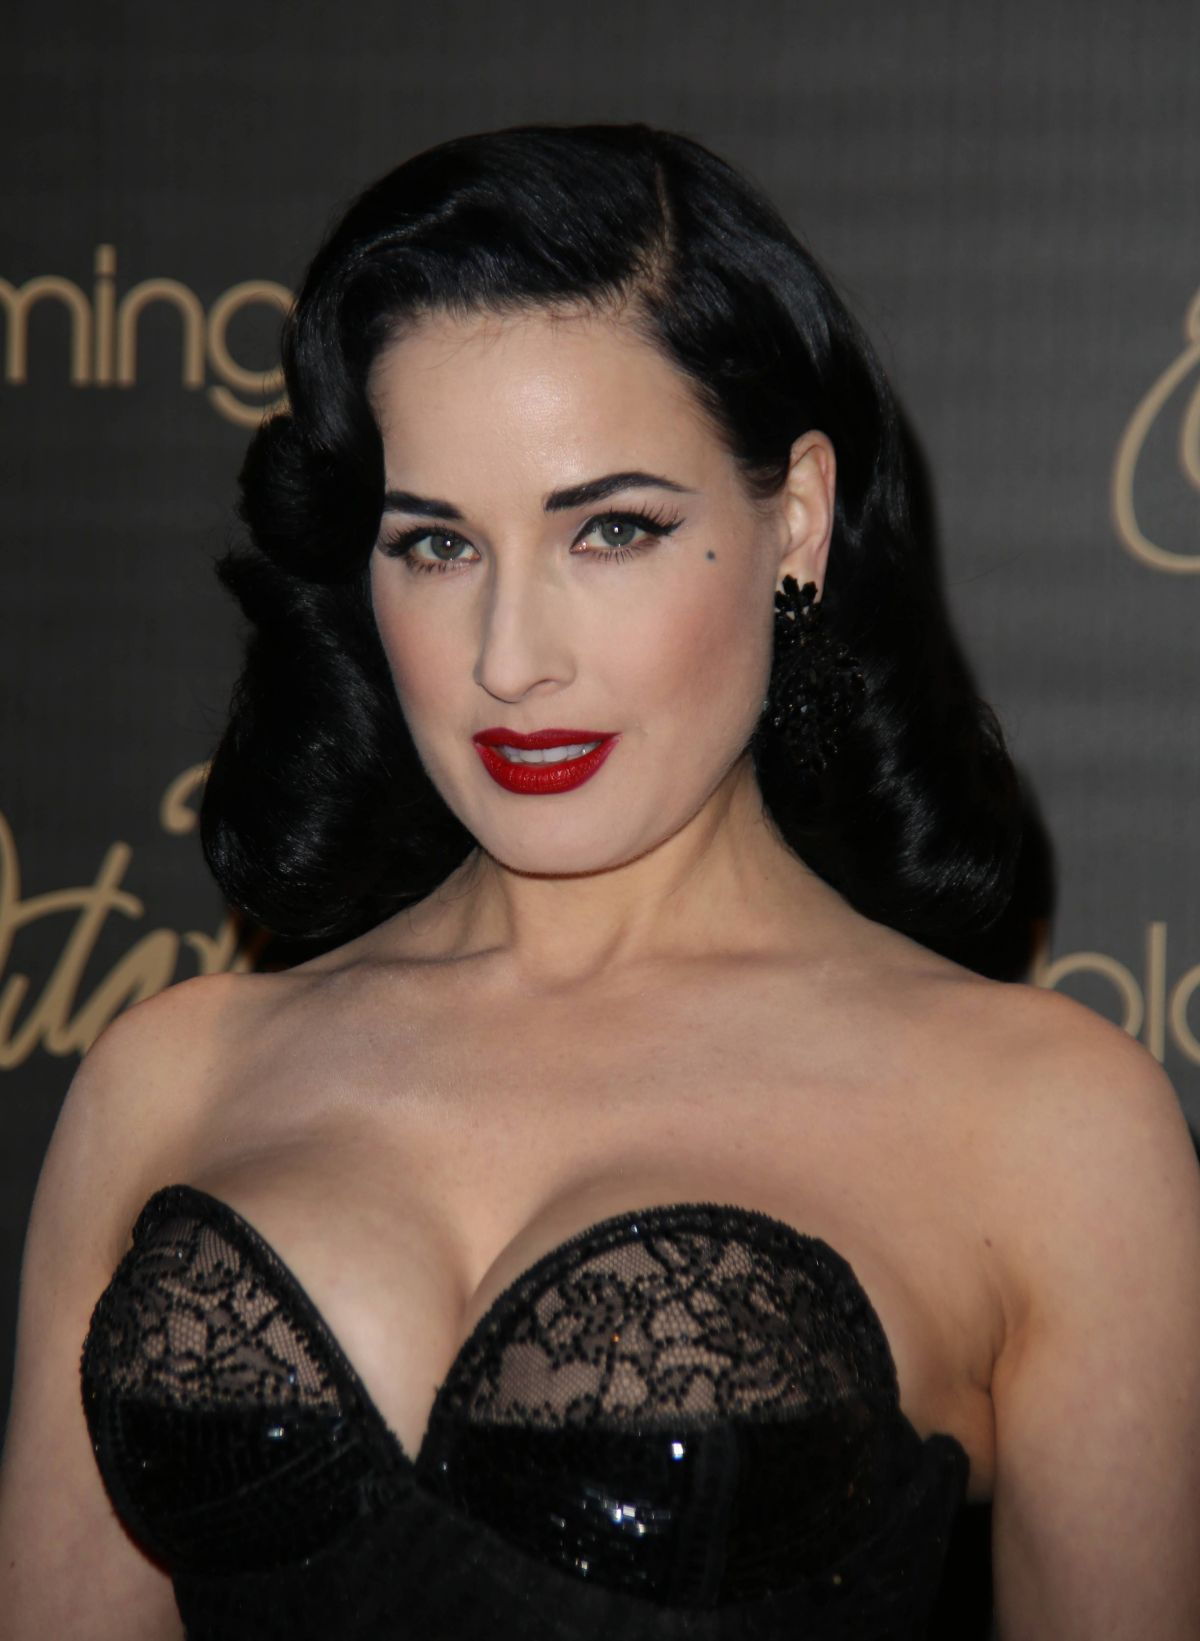 dita von teese launching her lingerie line at bloomingdales nyc celebzz. Black Bedroom Furniture Sets. Home Design Ideas